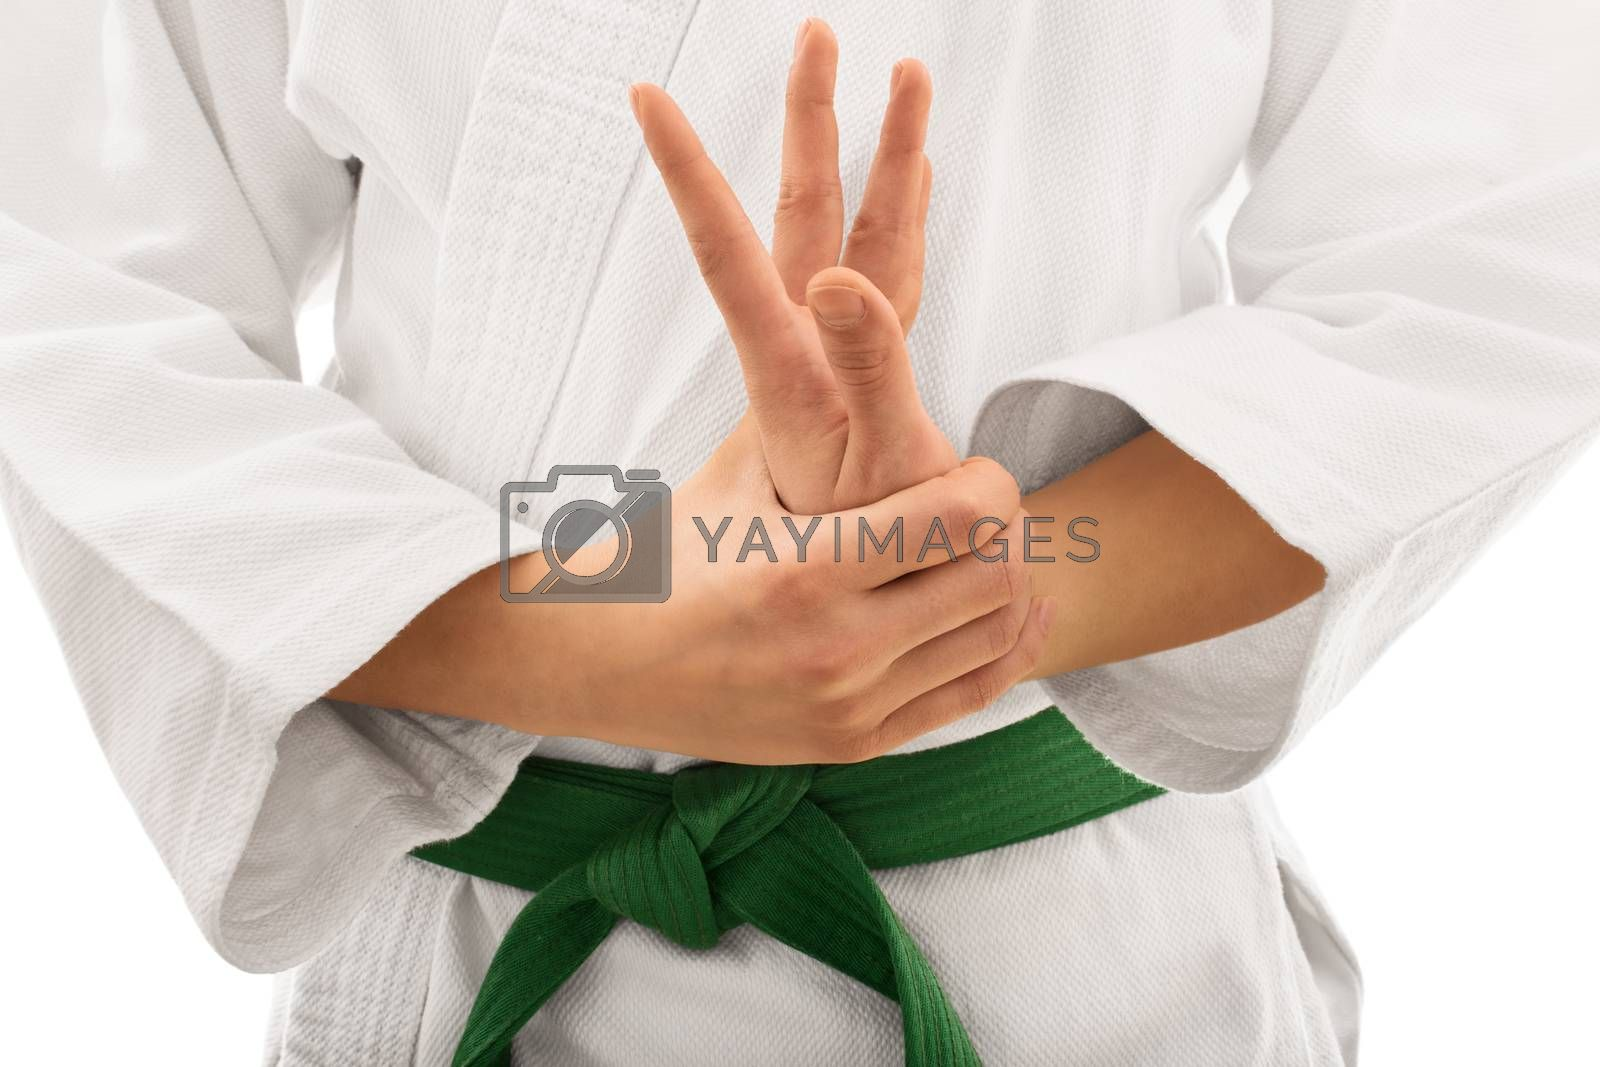 Close up shot of the mid section of a martial arts fighter in white kimono with green belt stretching and twisting her hand, isolated on white background.